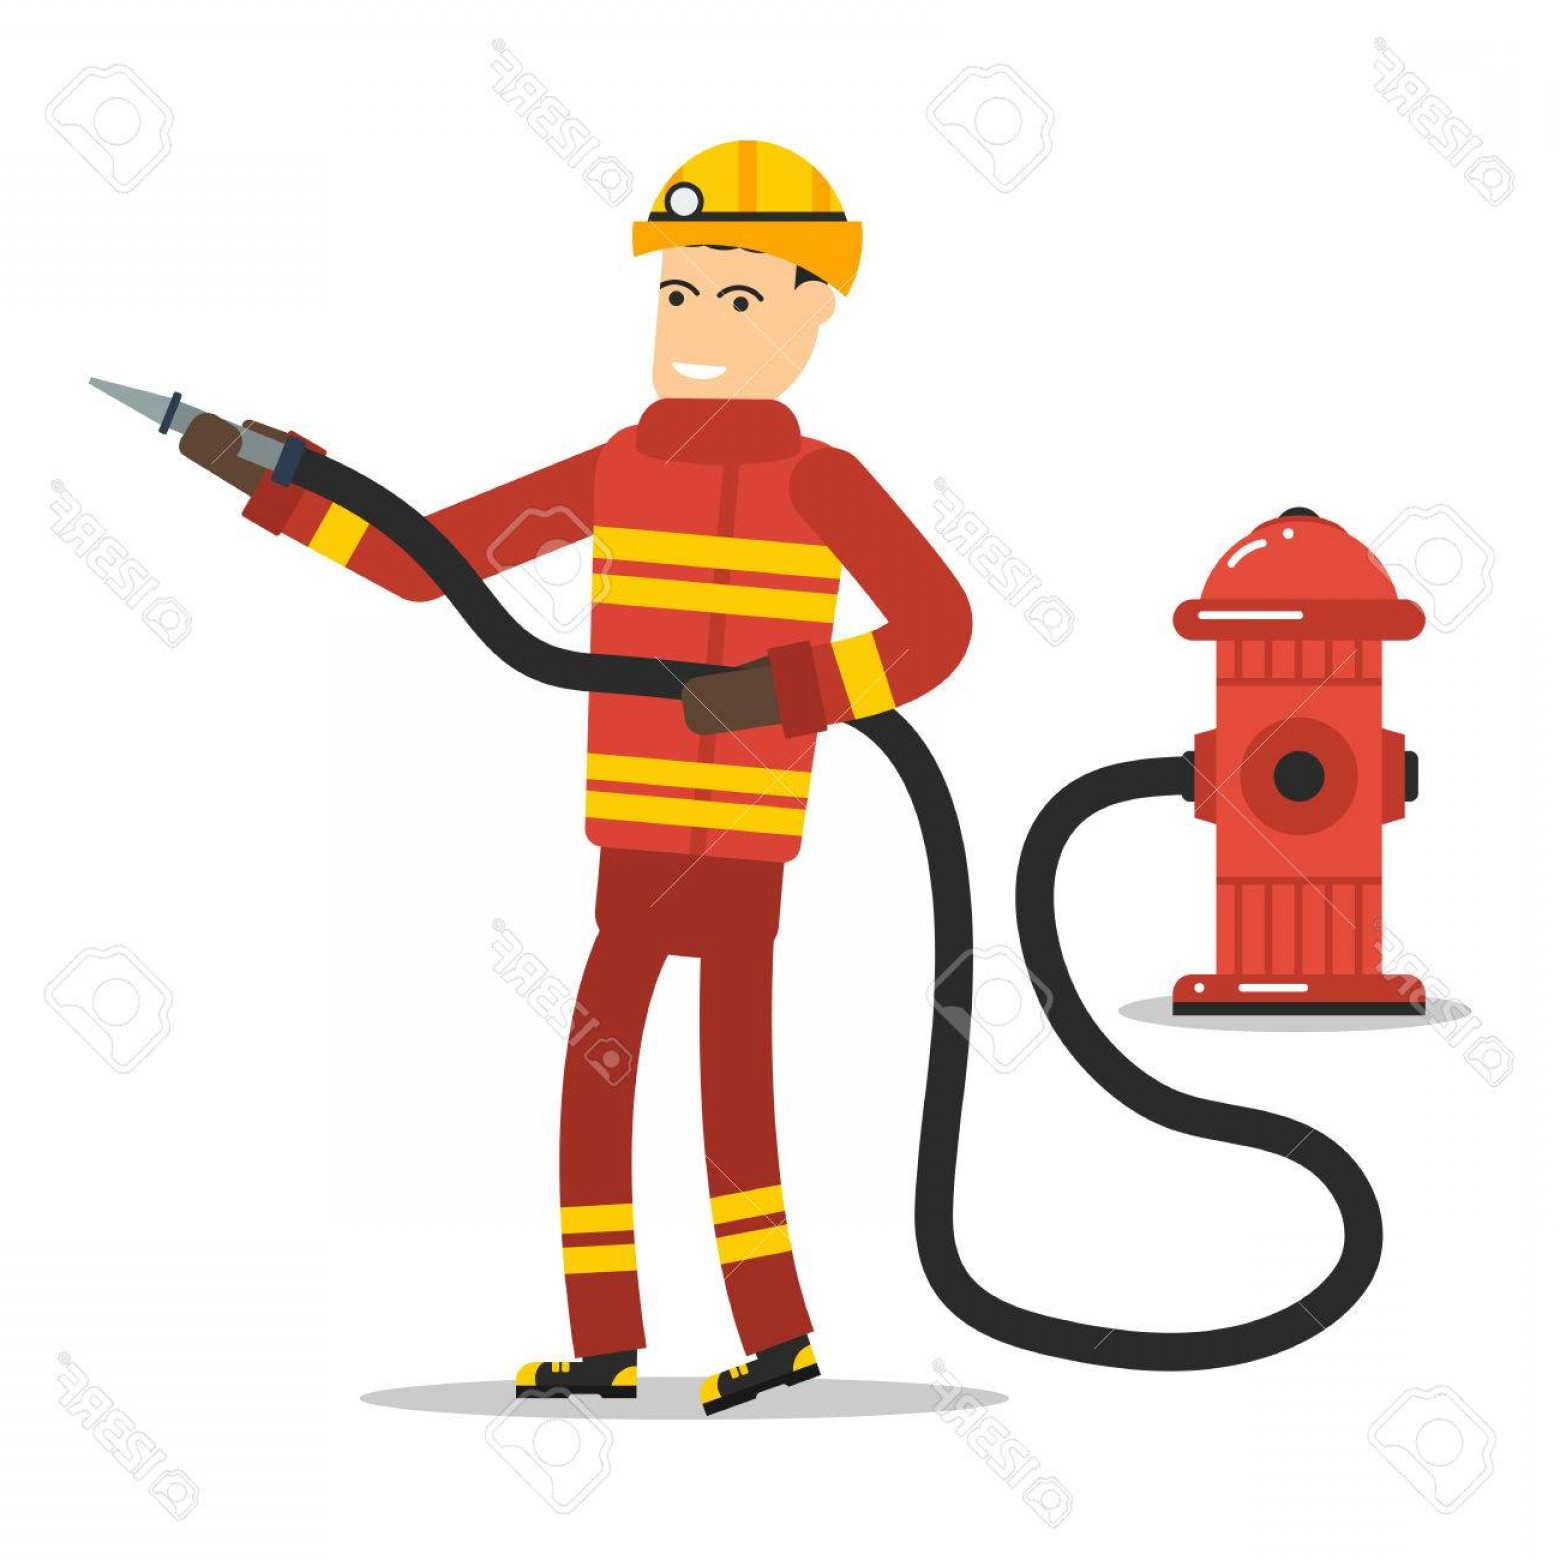 Maltese Cross Solid Vector: Photostock Vector Vector Flat Character Firefighter With A Hose And Hydrant